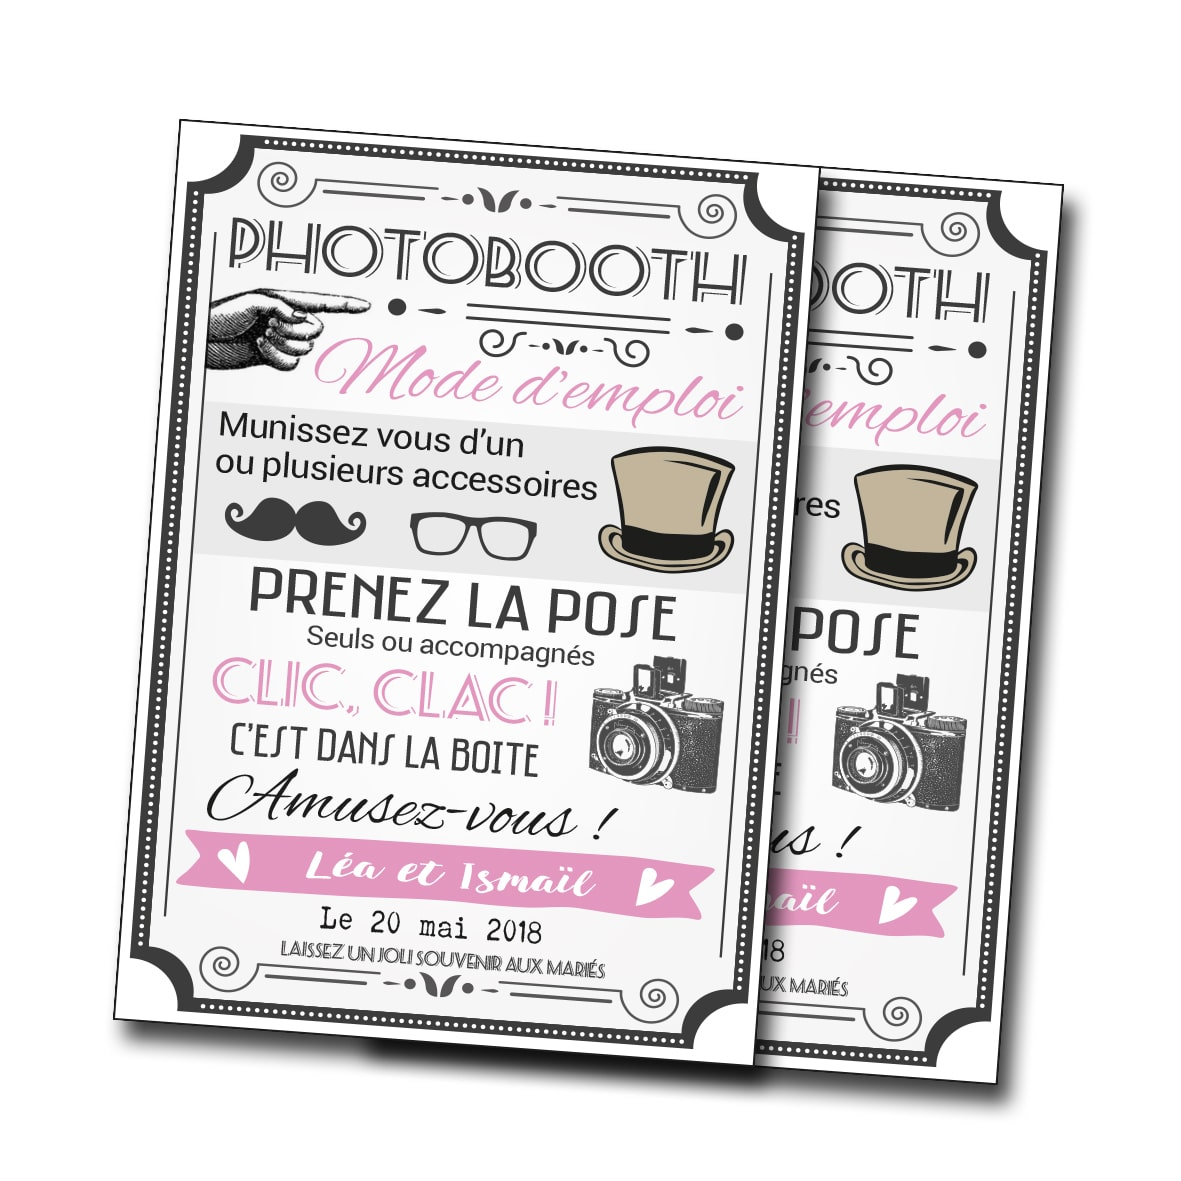 affiche photobooth mariage si78